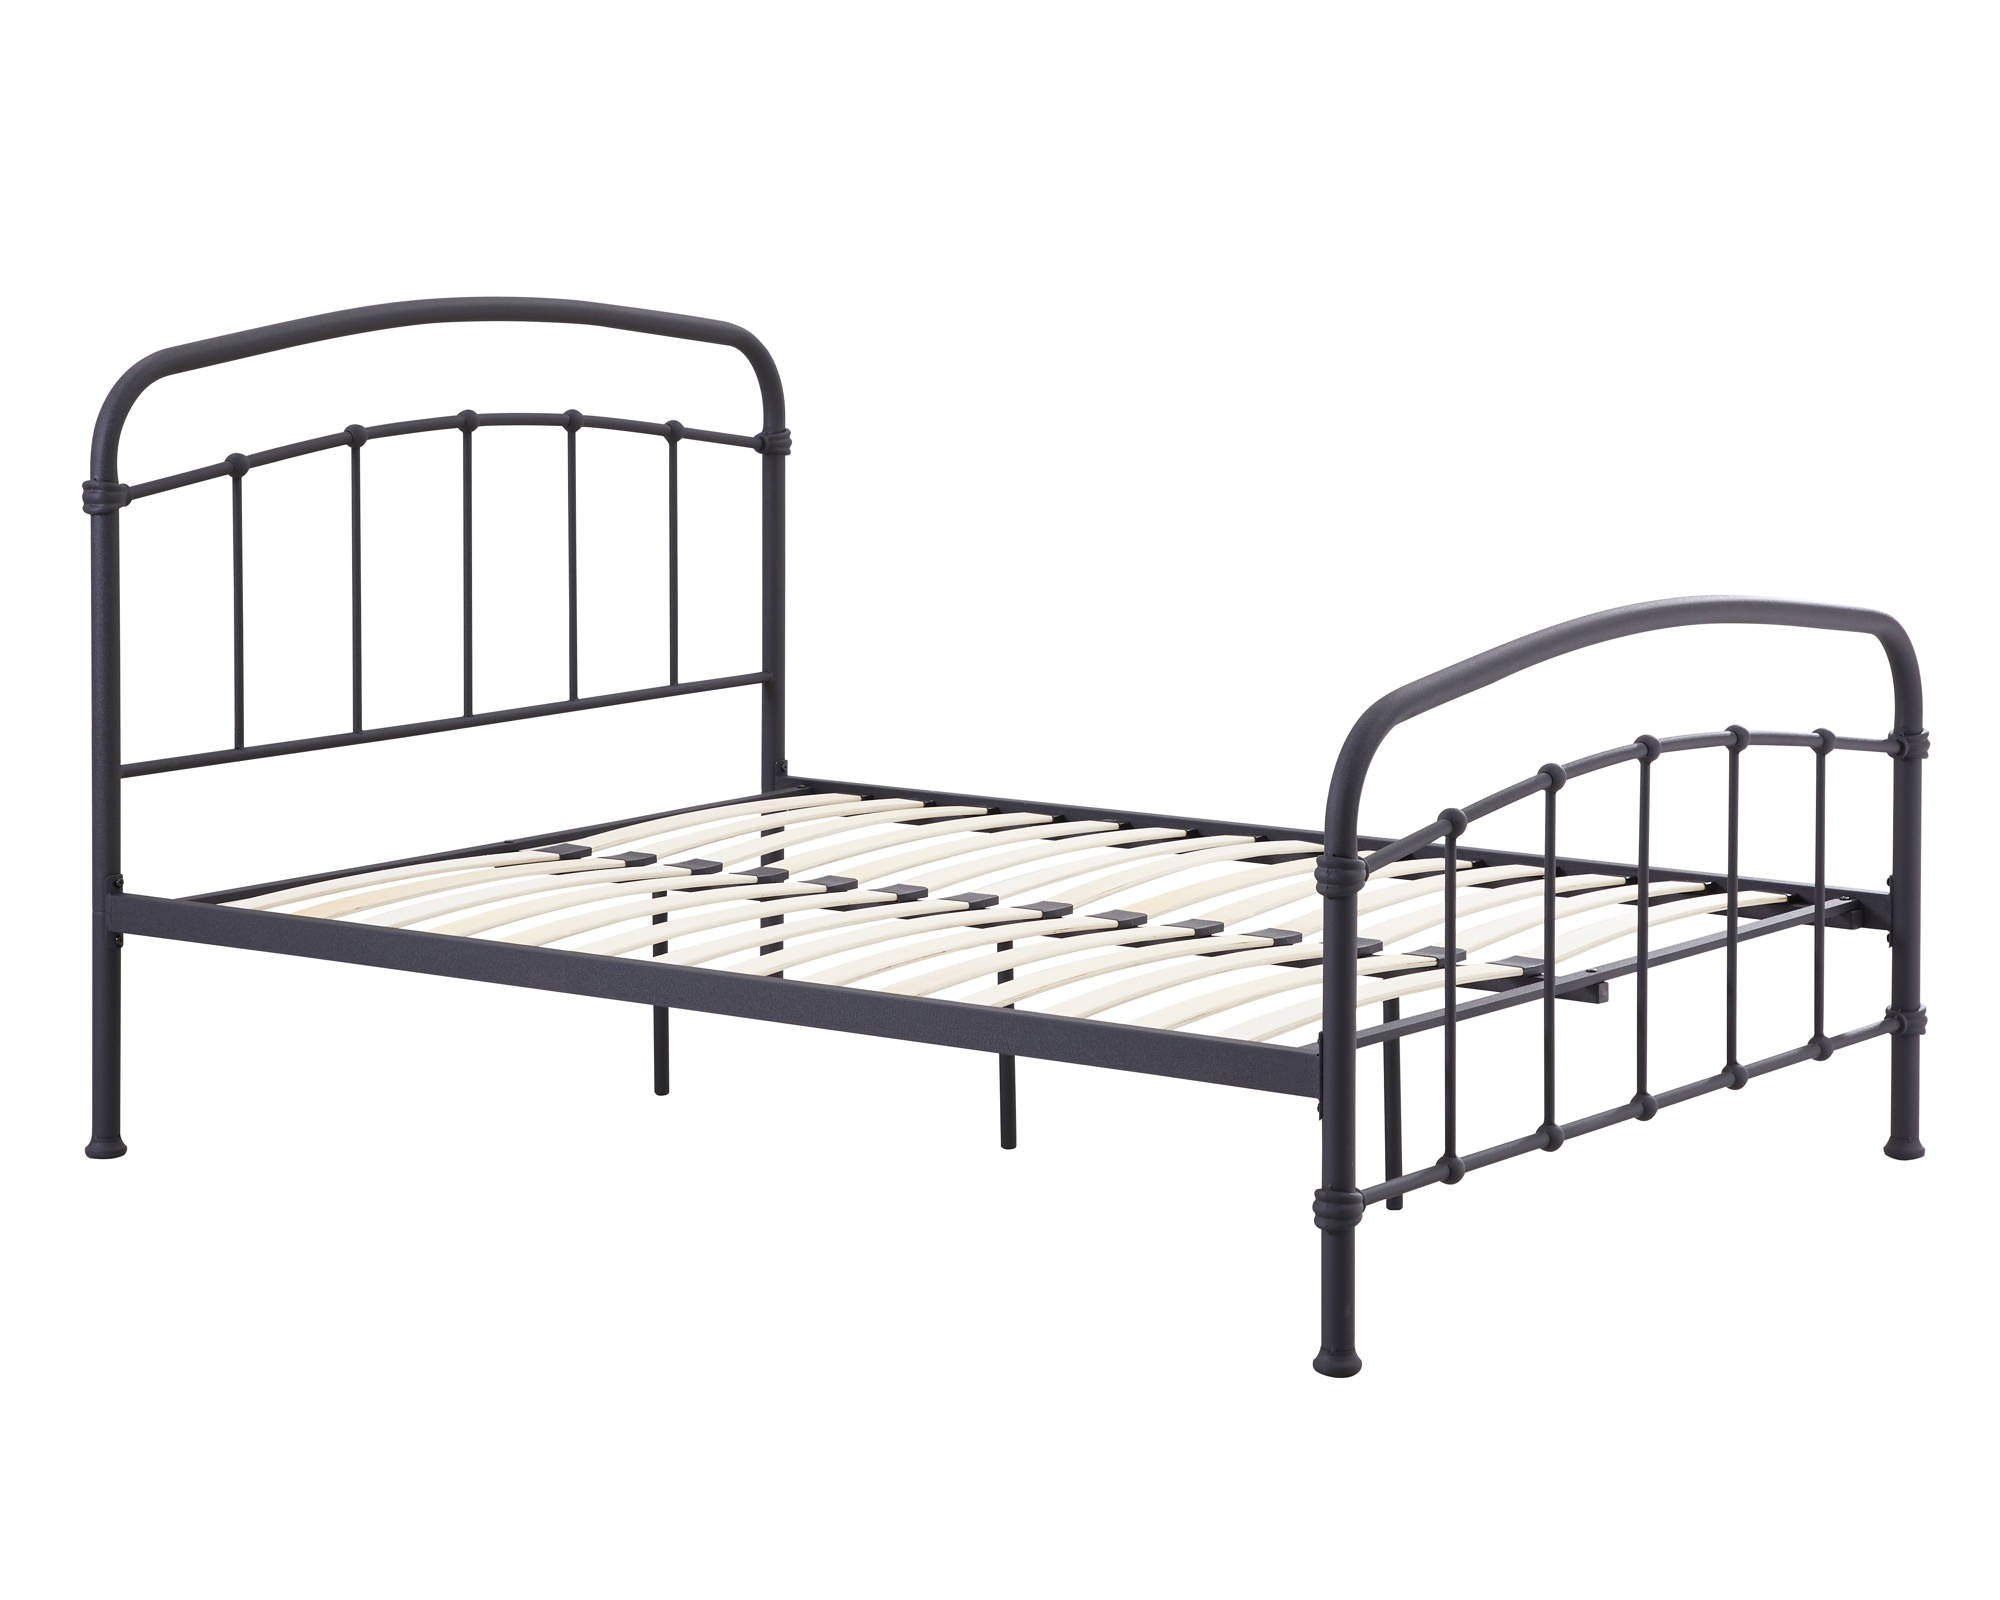 Stretton Double Bed in Black